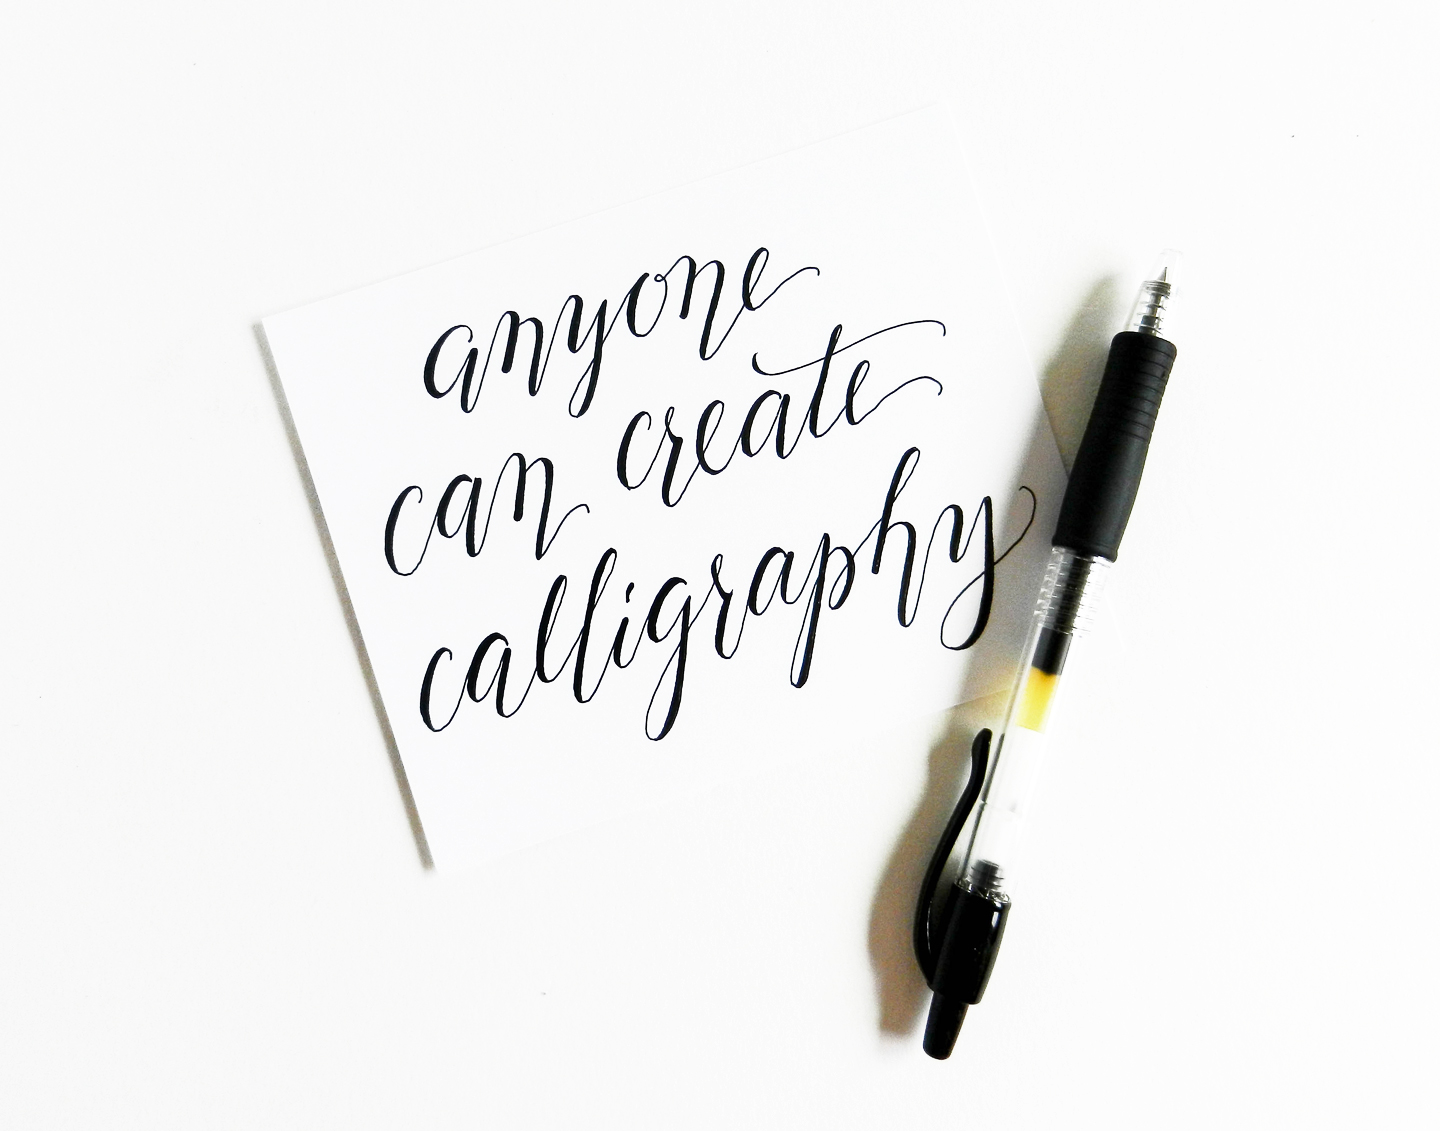 The beginner s guide to modern calligraphy part ii the postman s